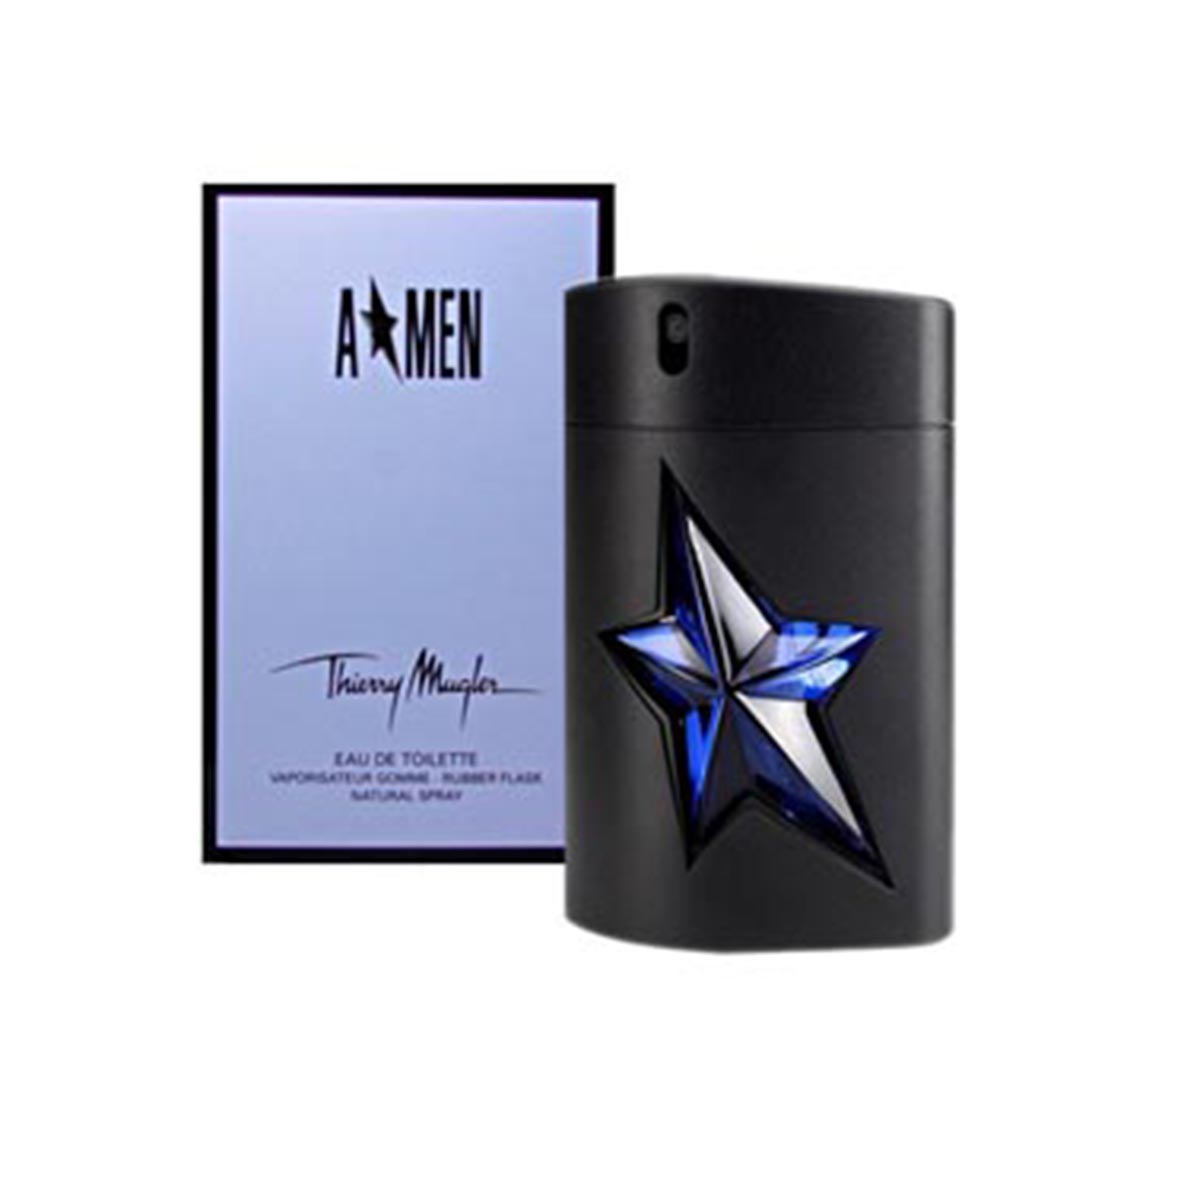 Thierry mugler a men eau de toilette rubber 50ml recargable vaporizador